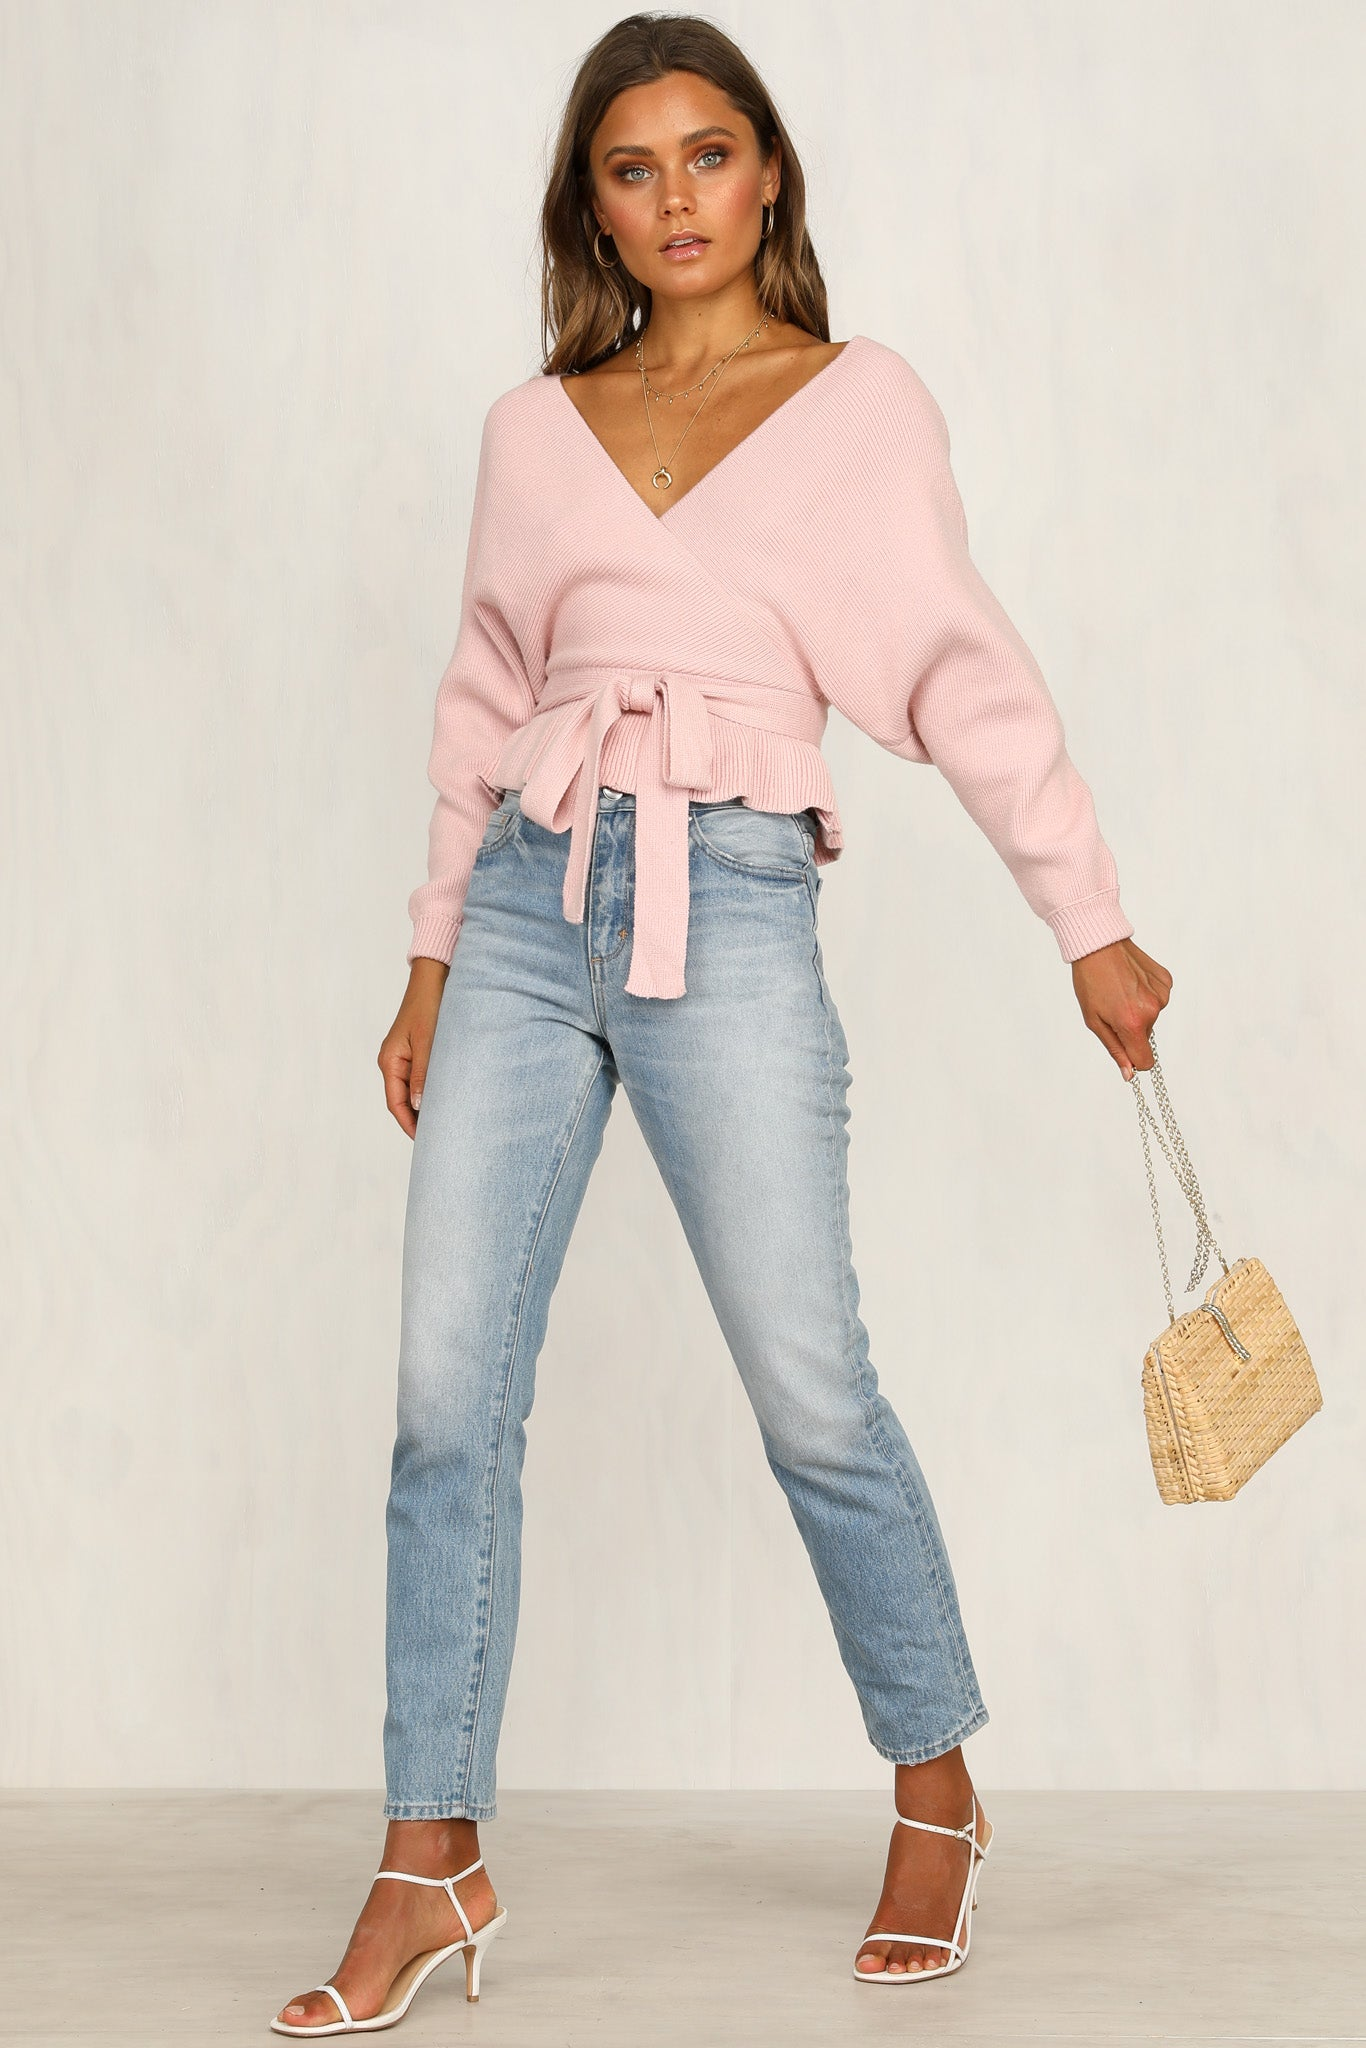 Hold On Me Knit (Pink)